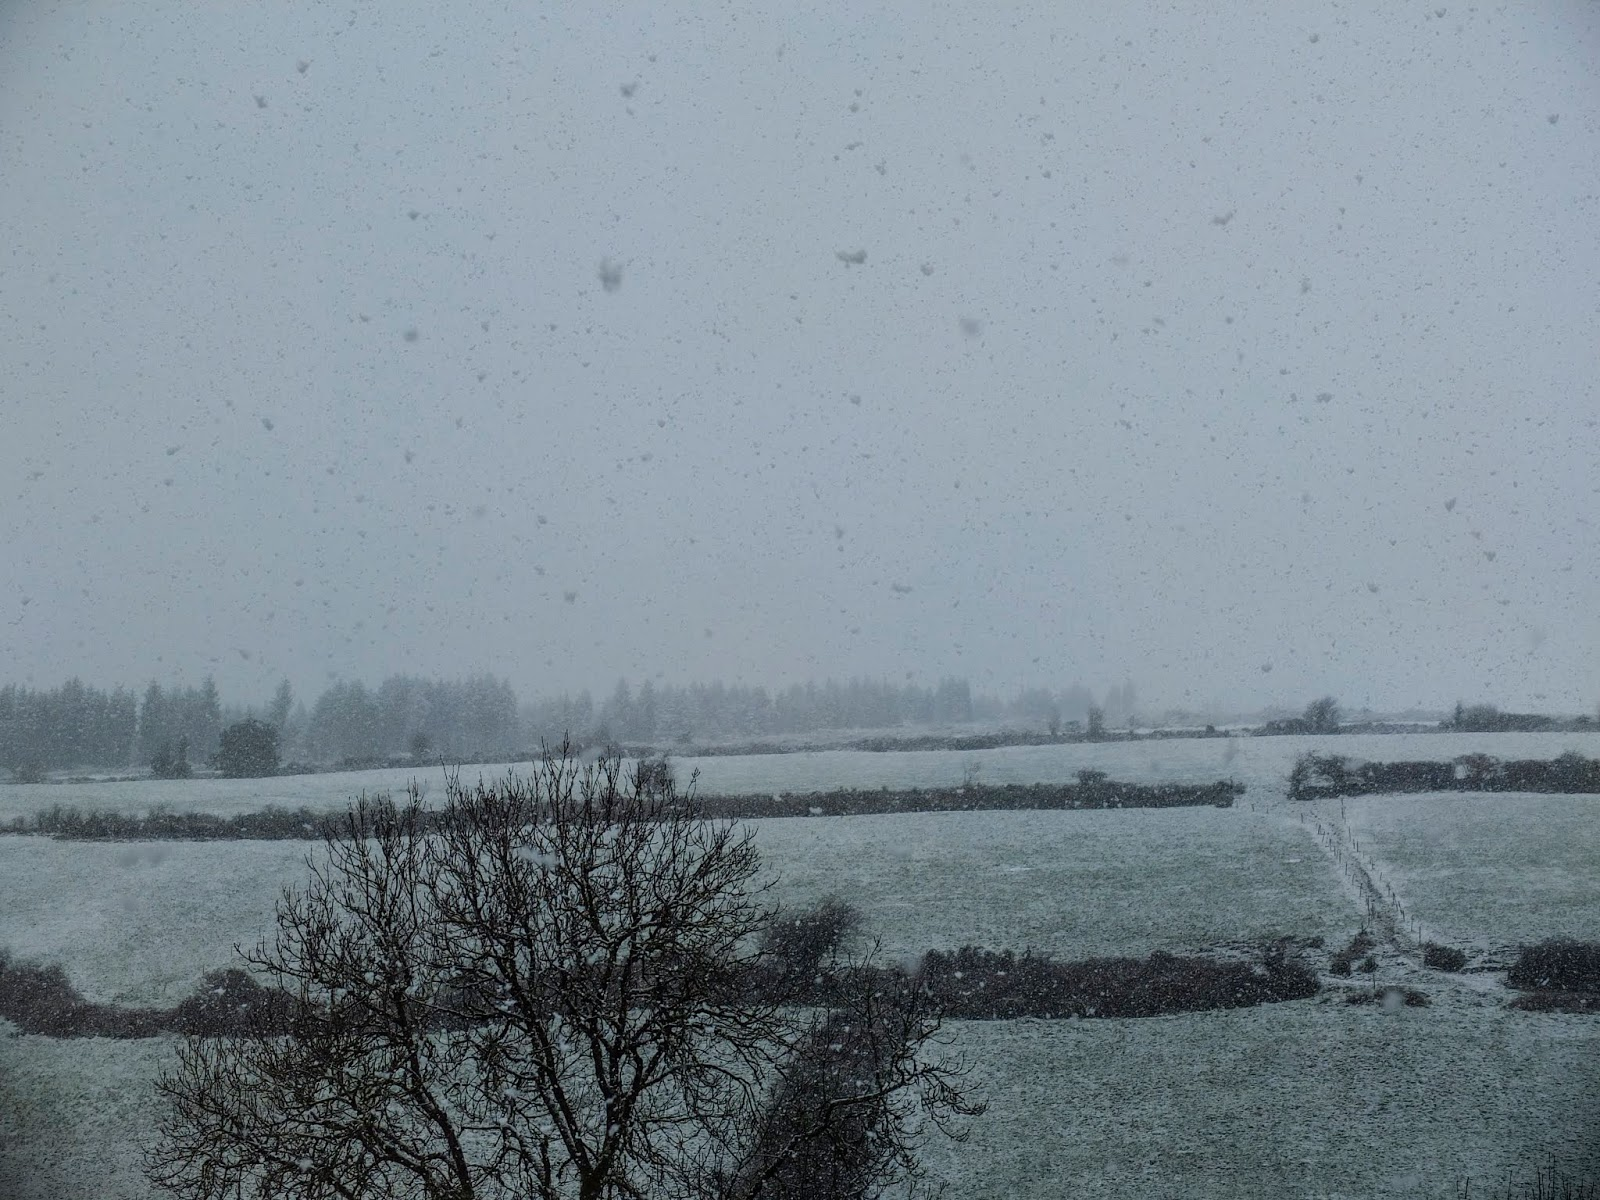 Snow falling in a valley in the Boggeragh Mountains in North Cork.